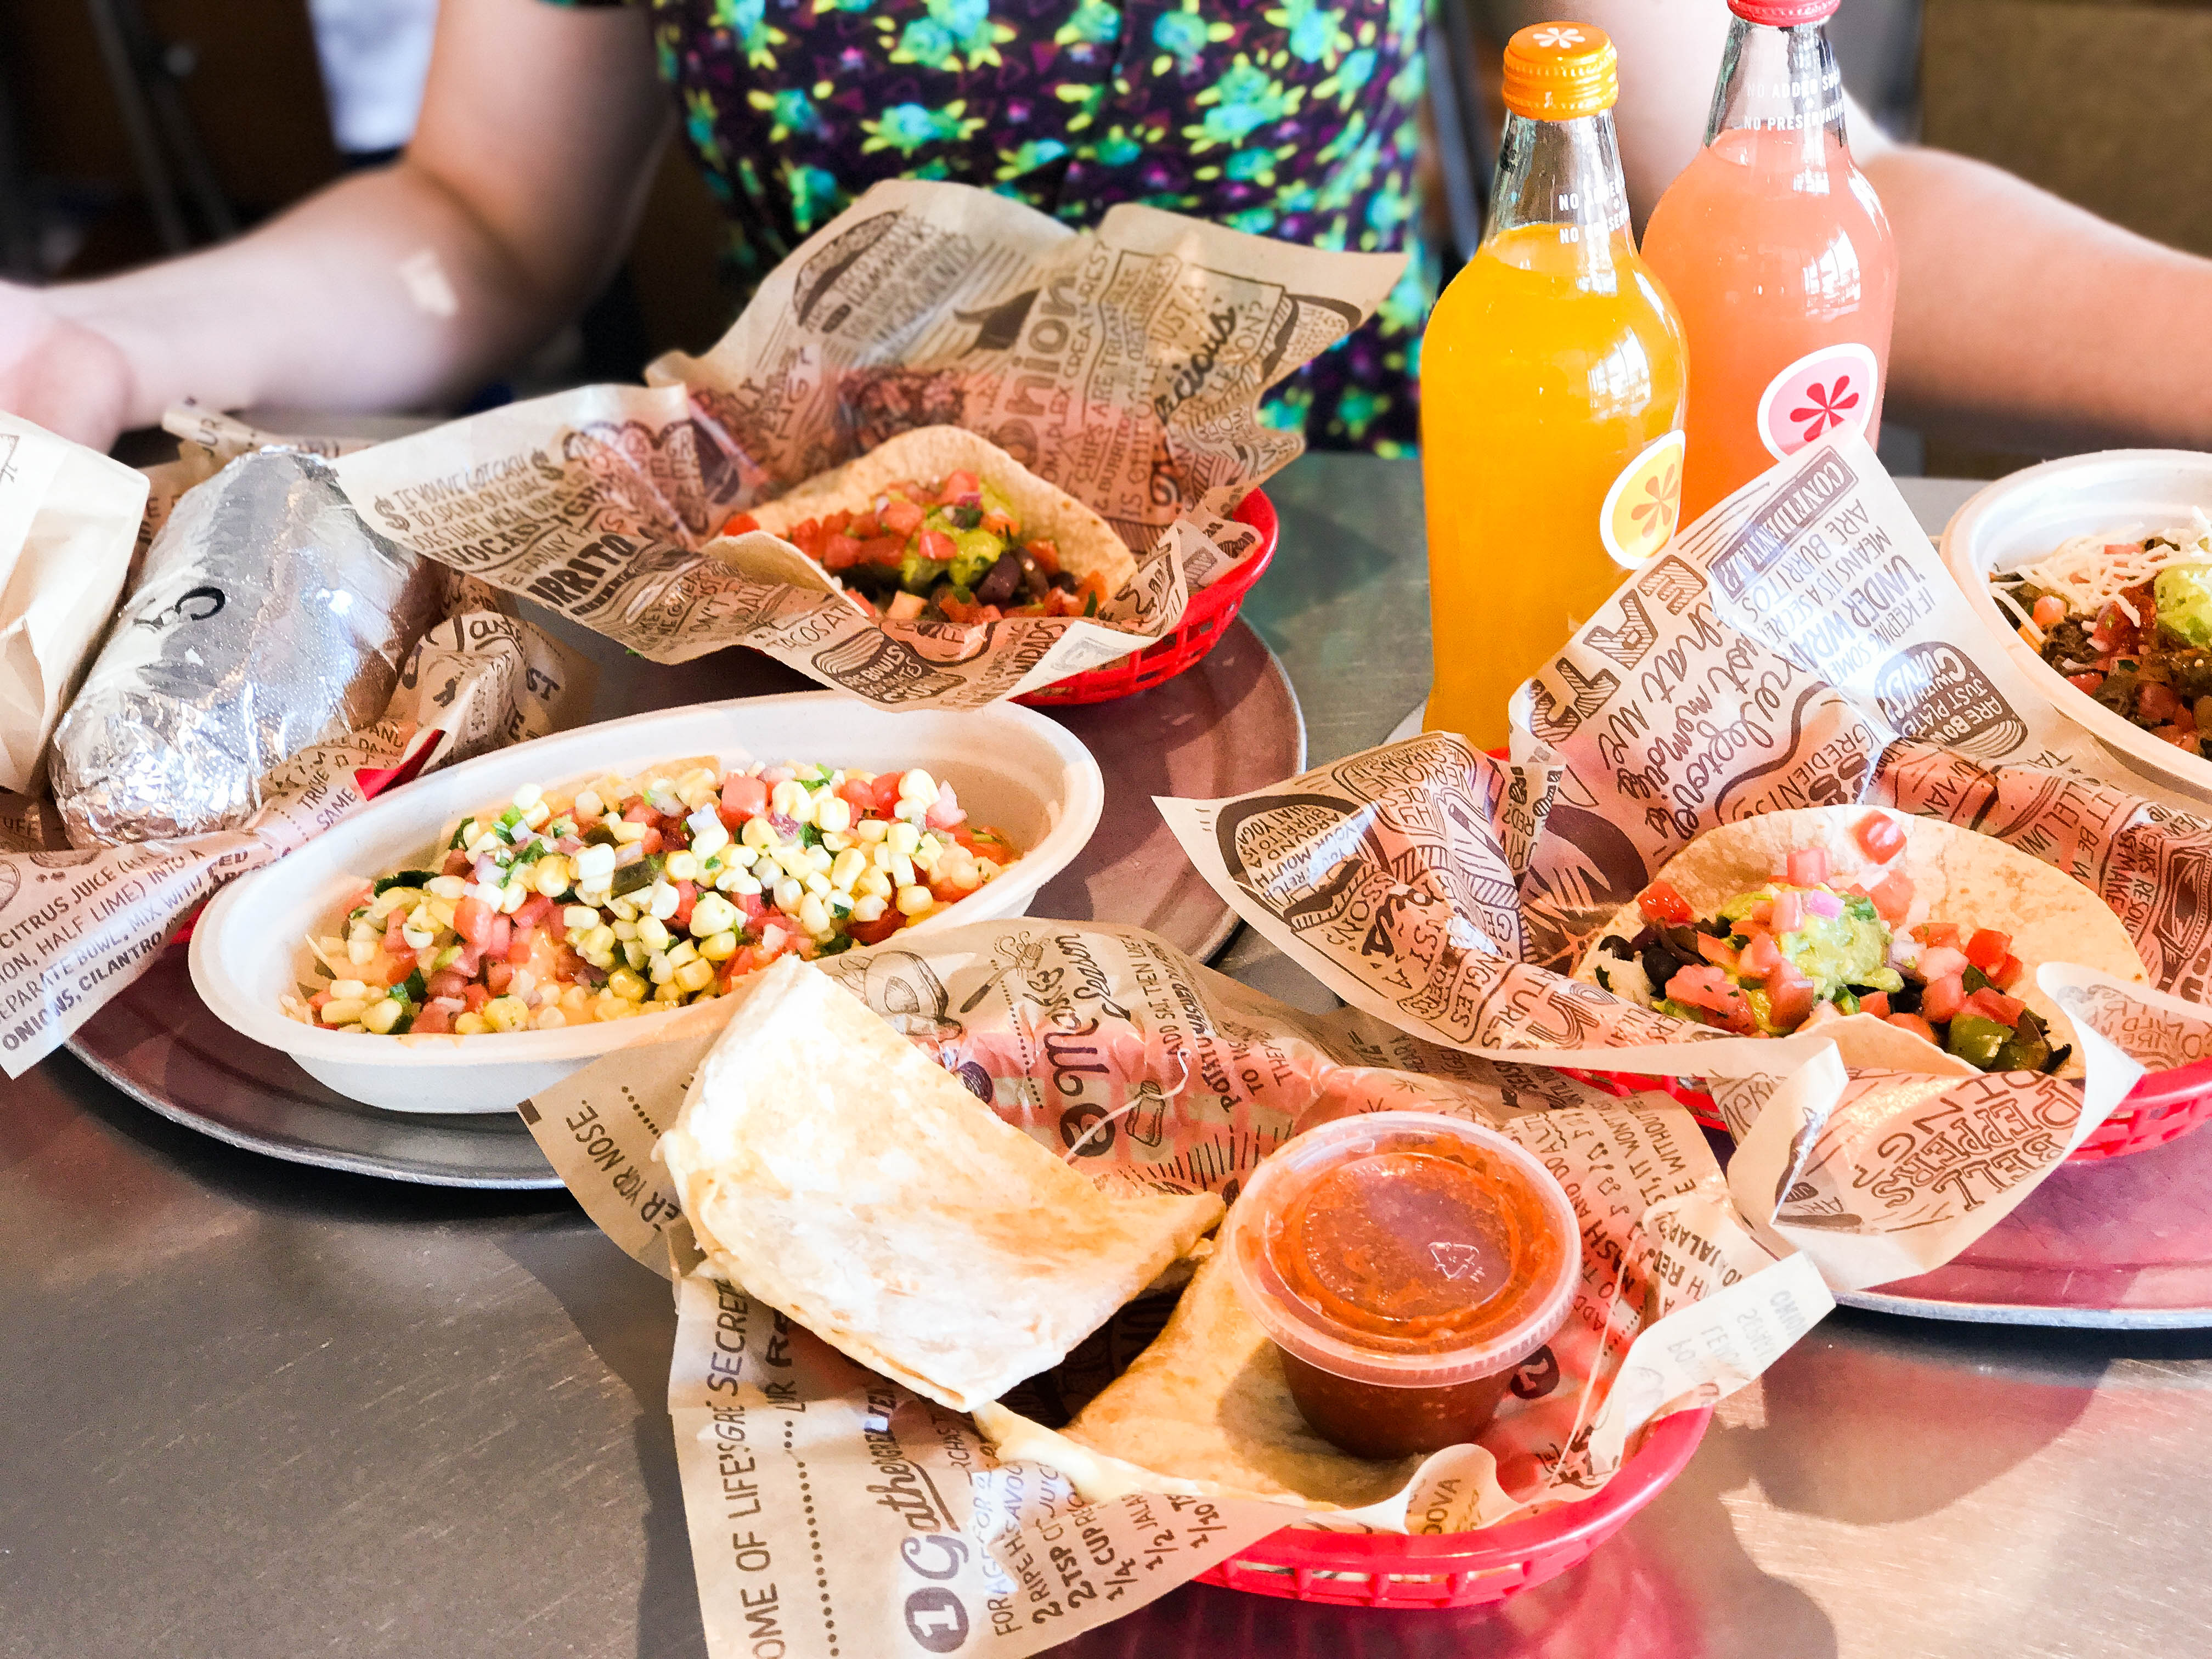 picture regarding Chipotle Coupons Printable referred to as 11 Chipotle Hacks Thatll Produce By yourself Will need Burritos Presently - The